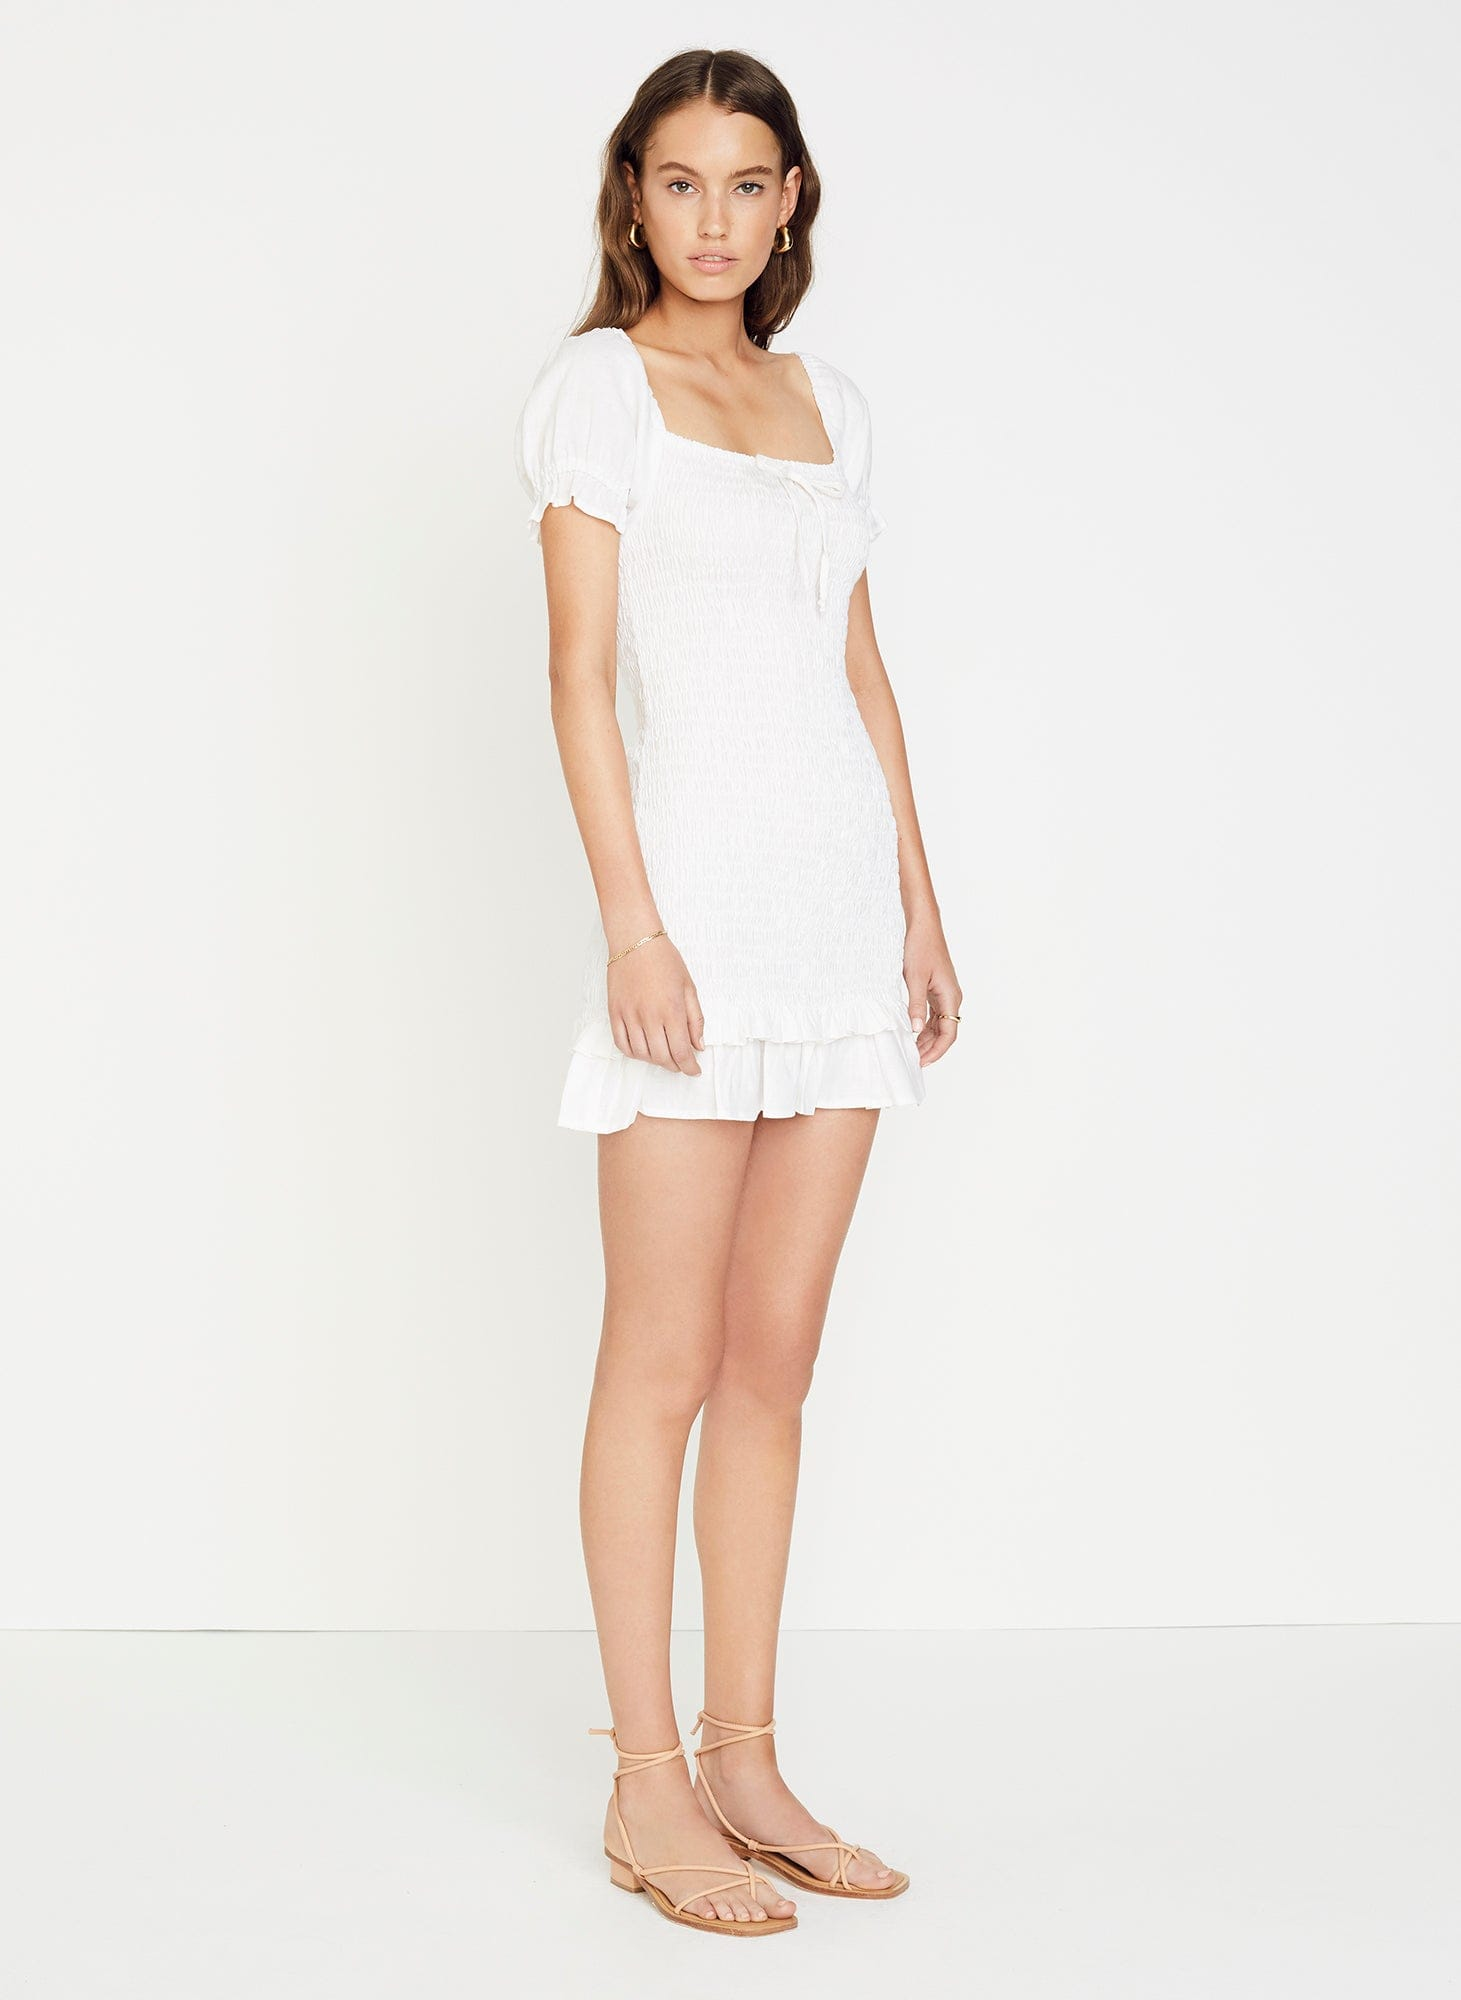 PLAIN WASHED WHITE - CETTE MINI DRESS